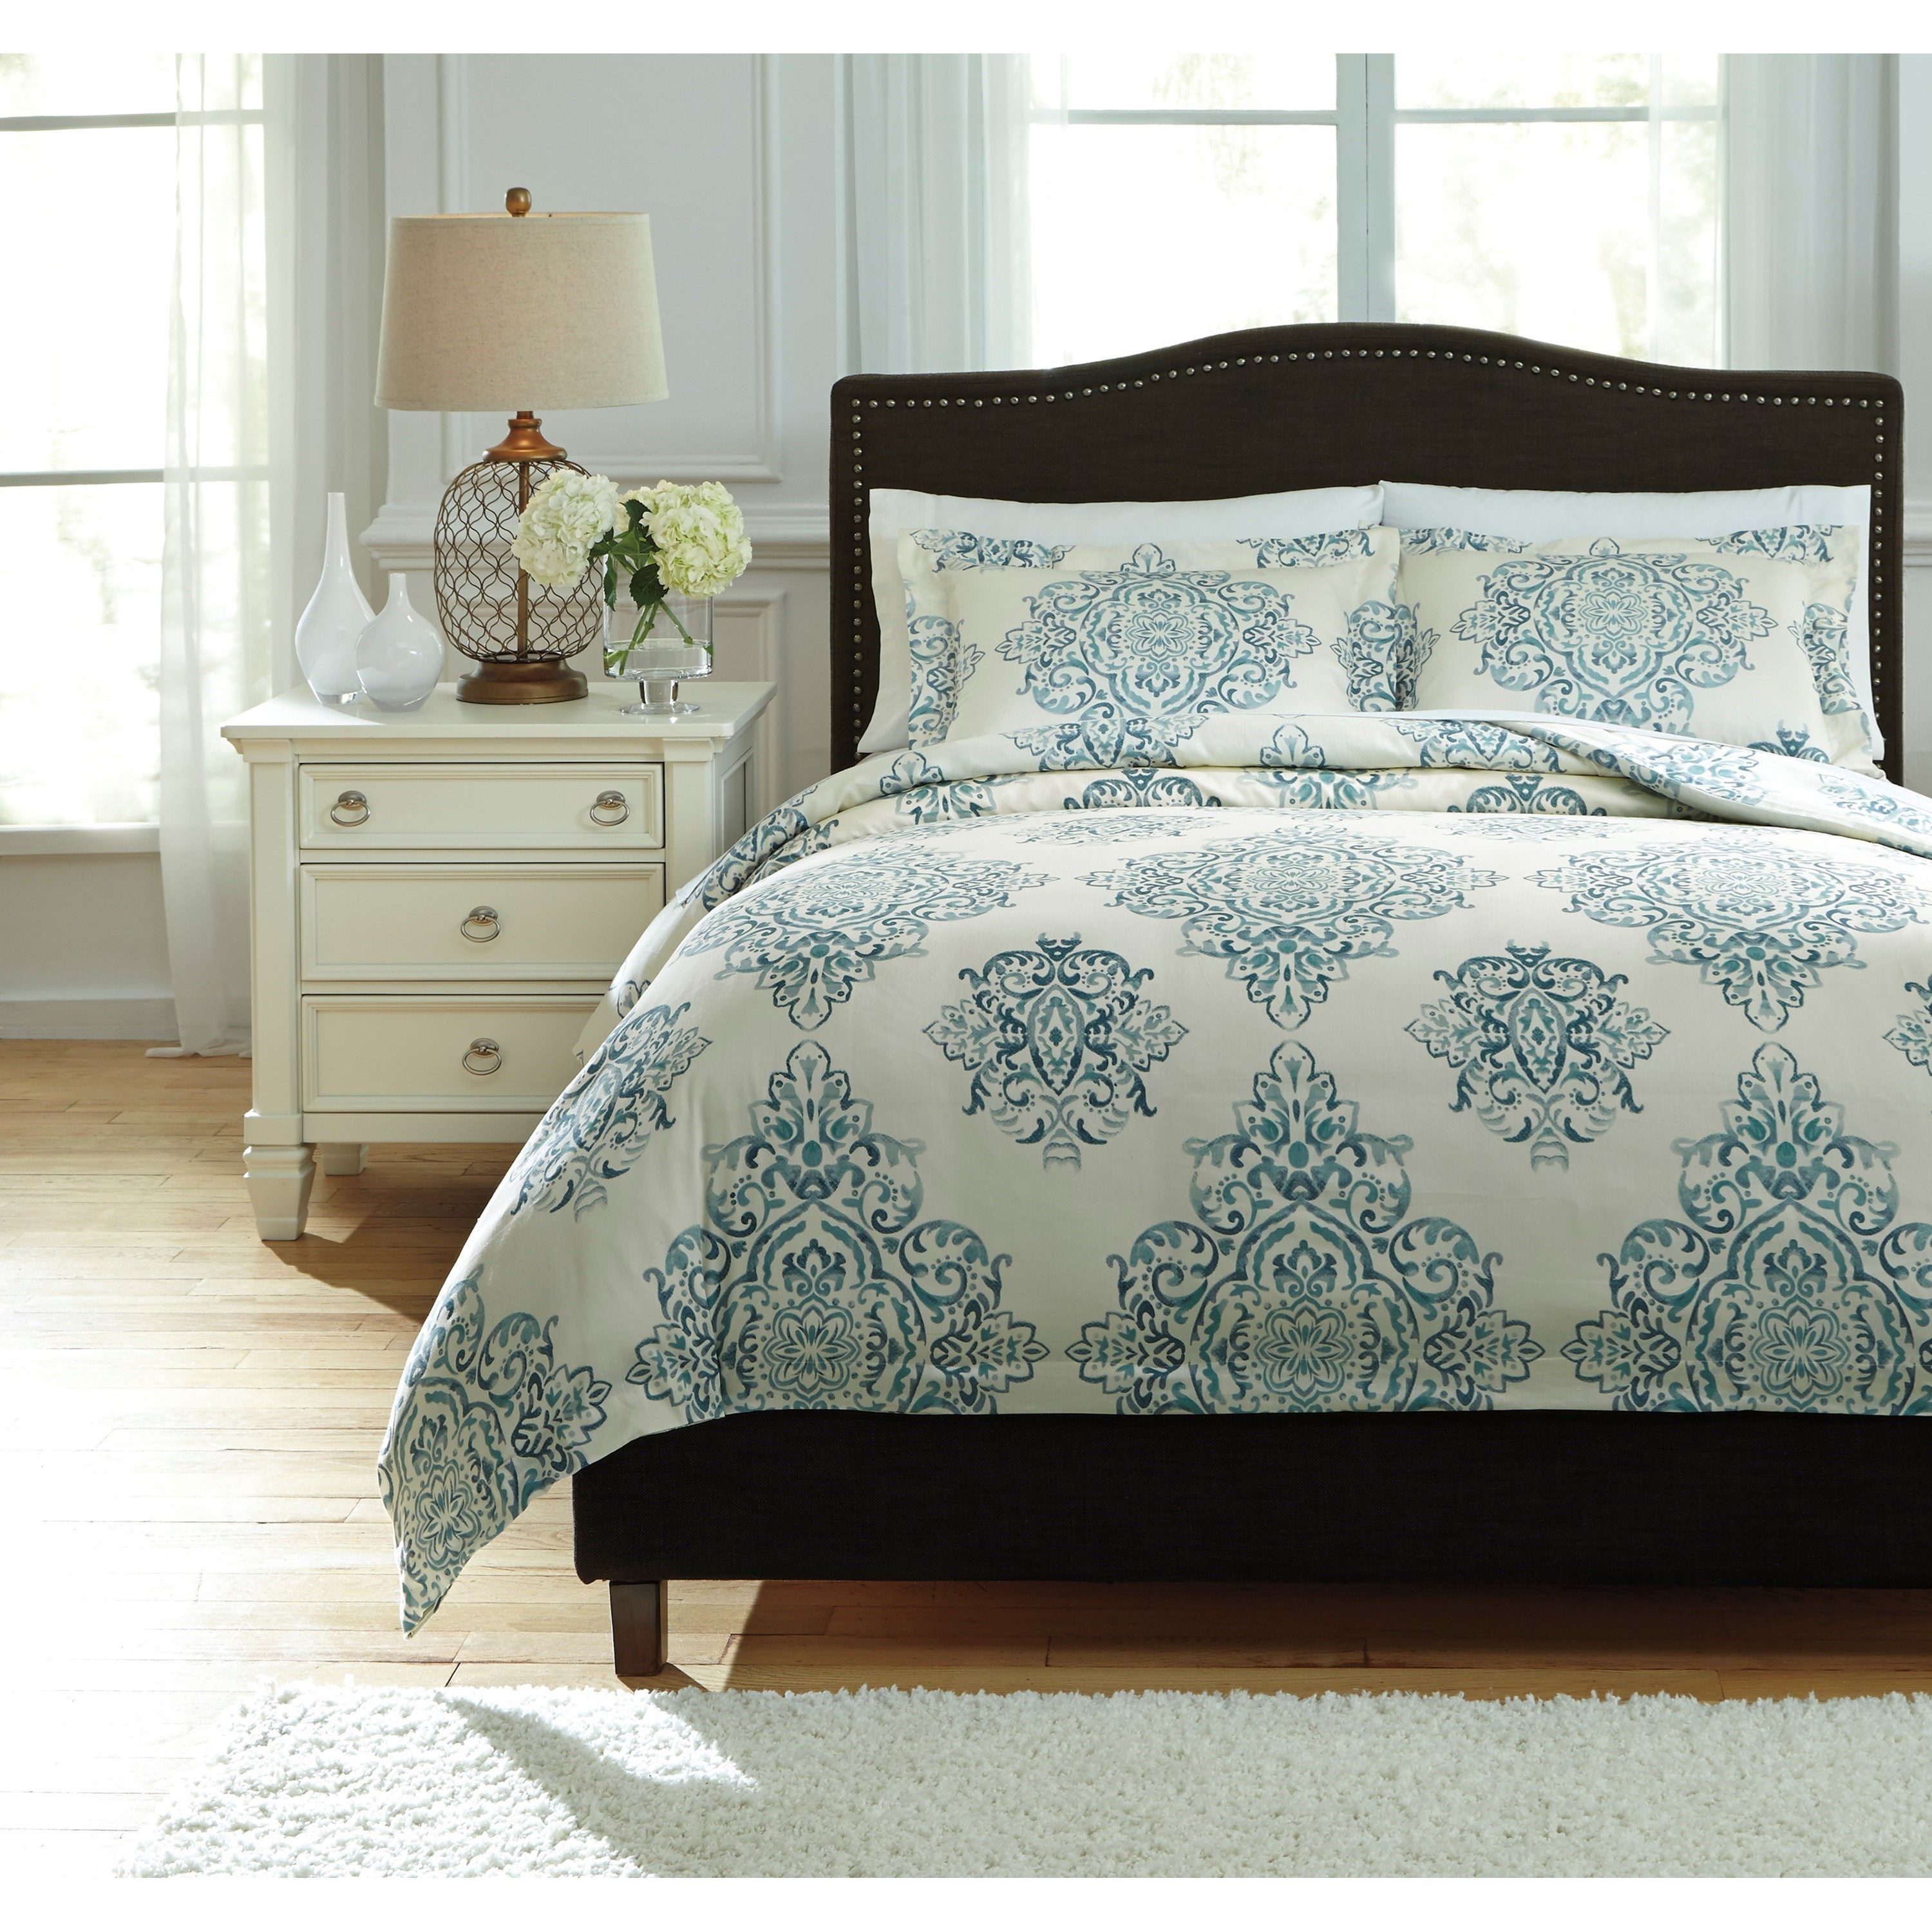 Signature Design by Ashley Bedding Sets King Fairholm Turquoise Duvet Cover Set - Item Number: Q728023K